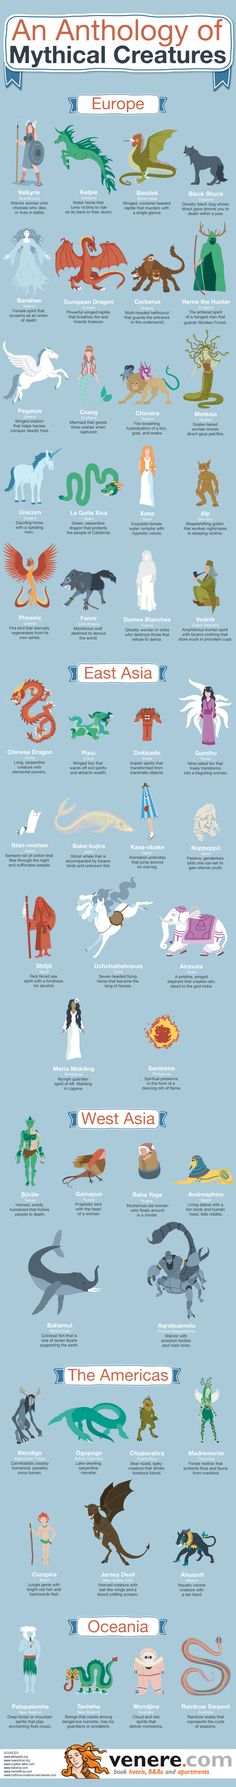 MythicalCreatures.png (800×6060)                                                                                                                                                                                 More